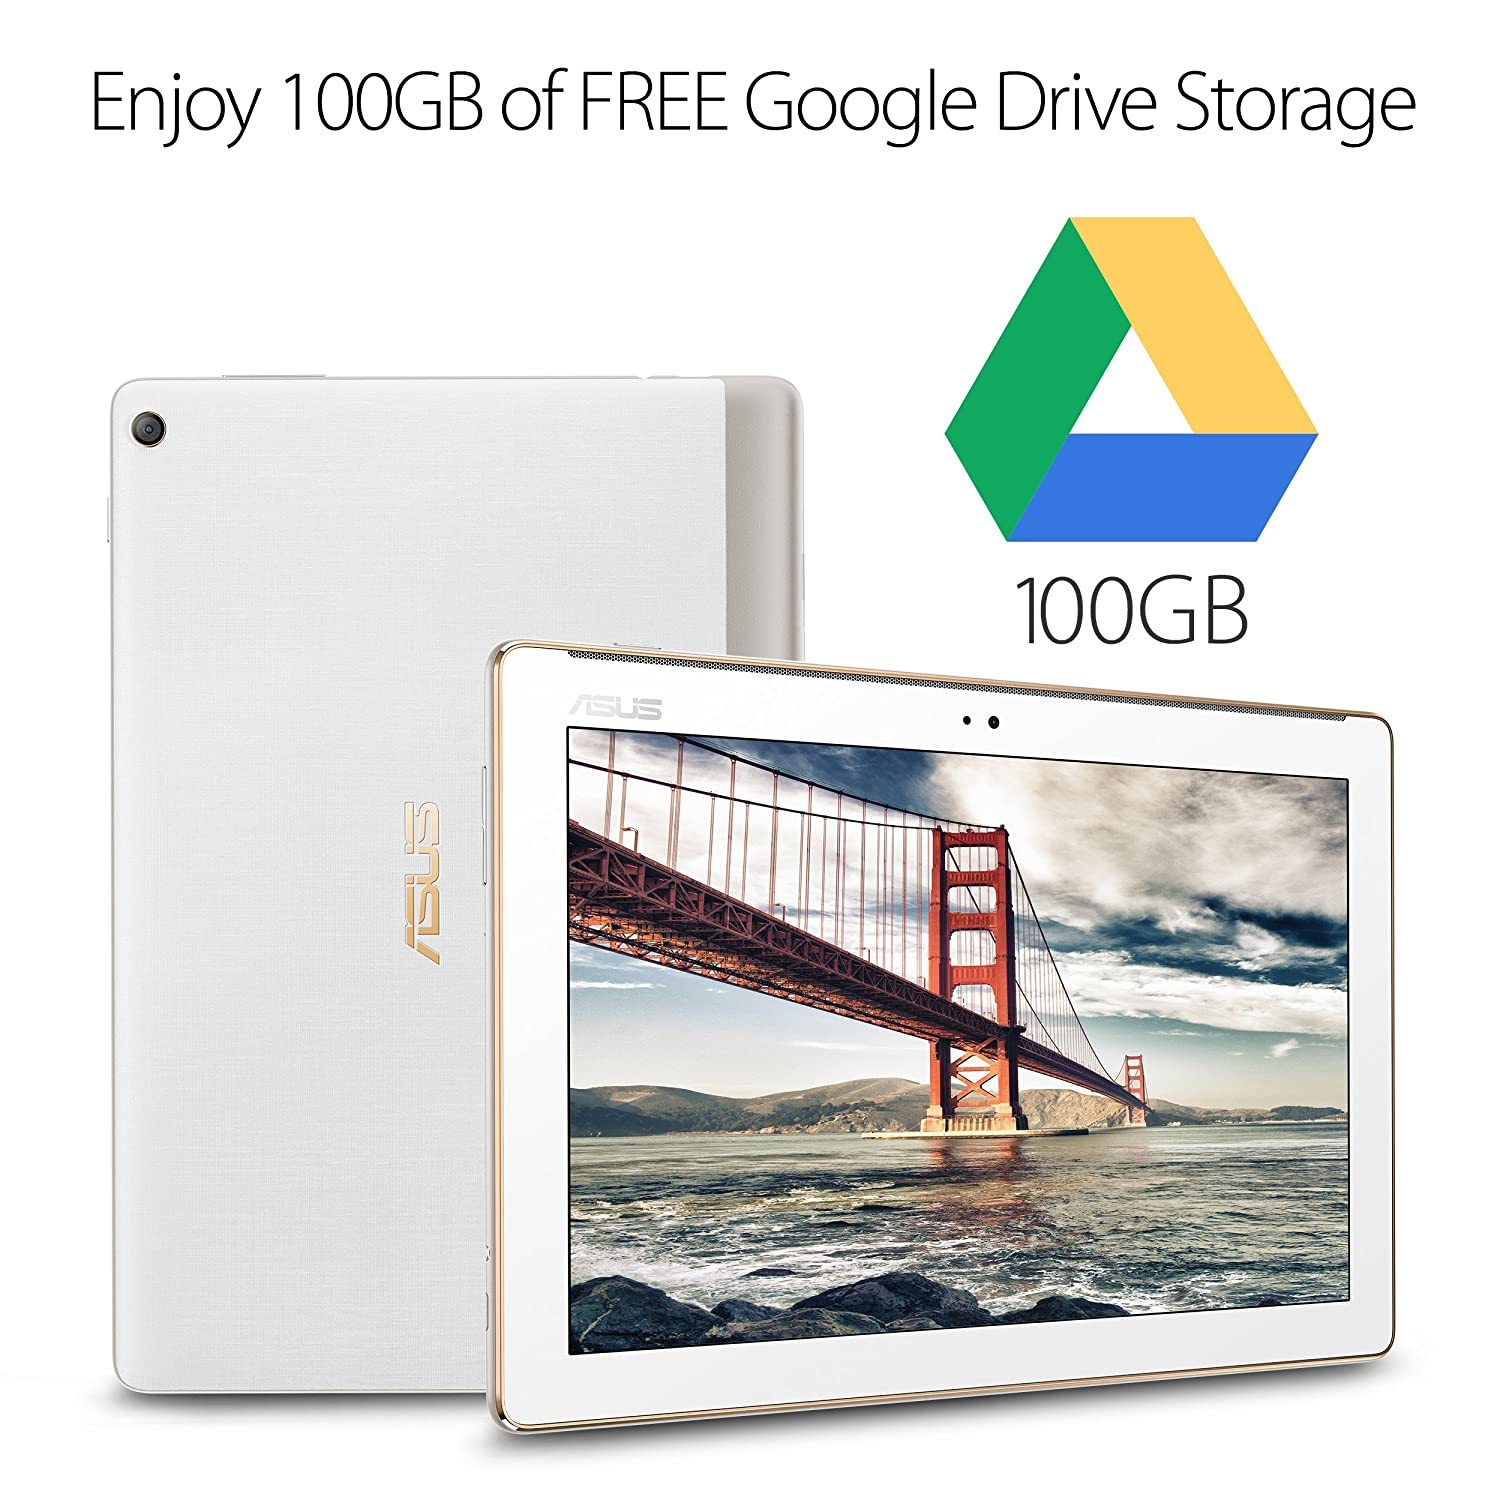 ASUS ZenPad 10 10 1-inch IPS WXGA (1280x800) FHD Tablet, 2GB RAM 16GB  storage, 4680 mAh battery, Android 7 0, Pearl White (Z301MF-A2-WH)